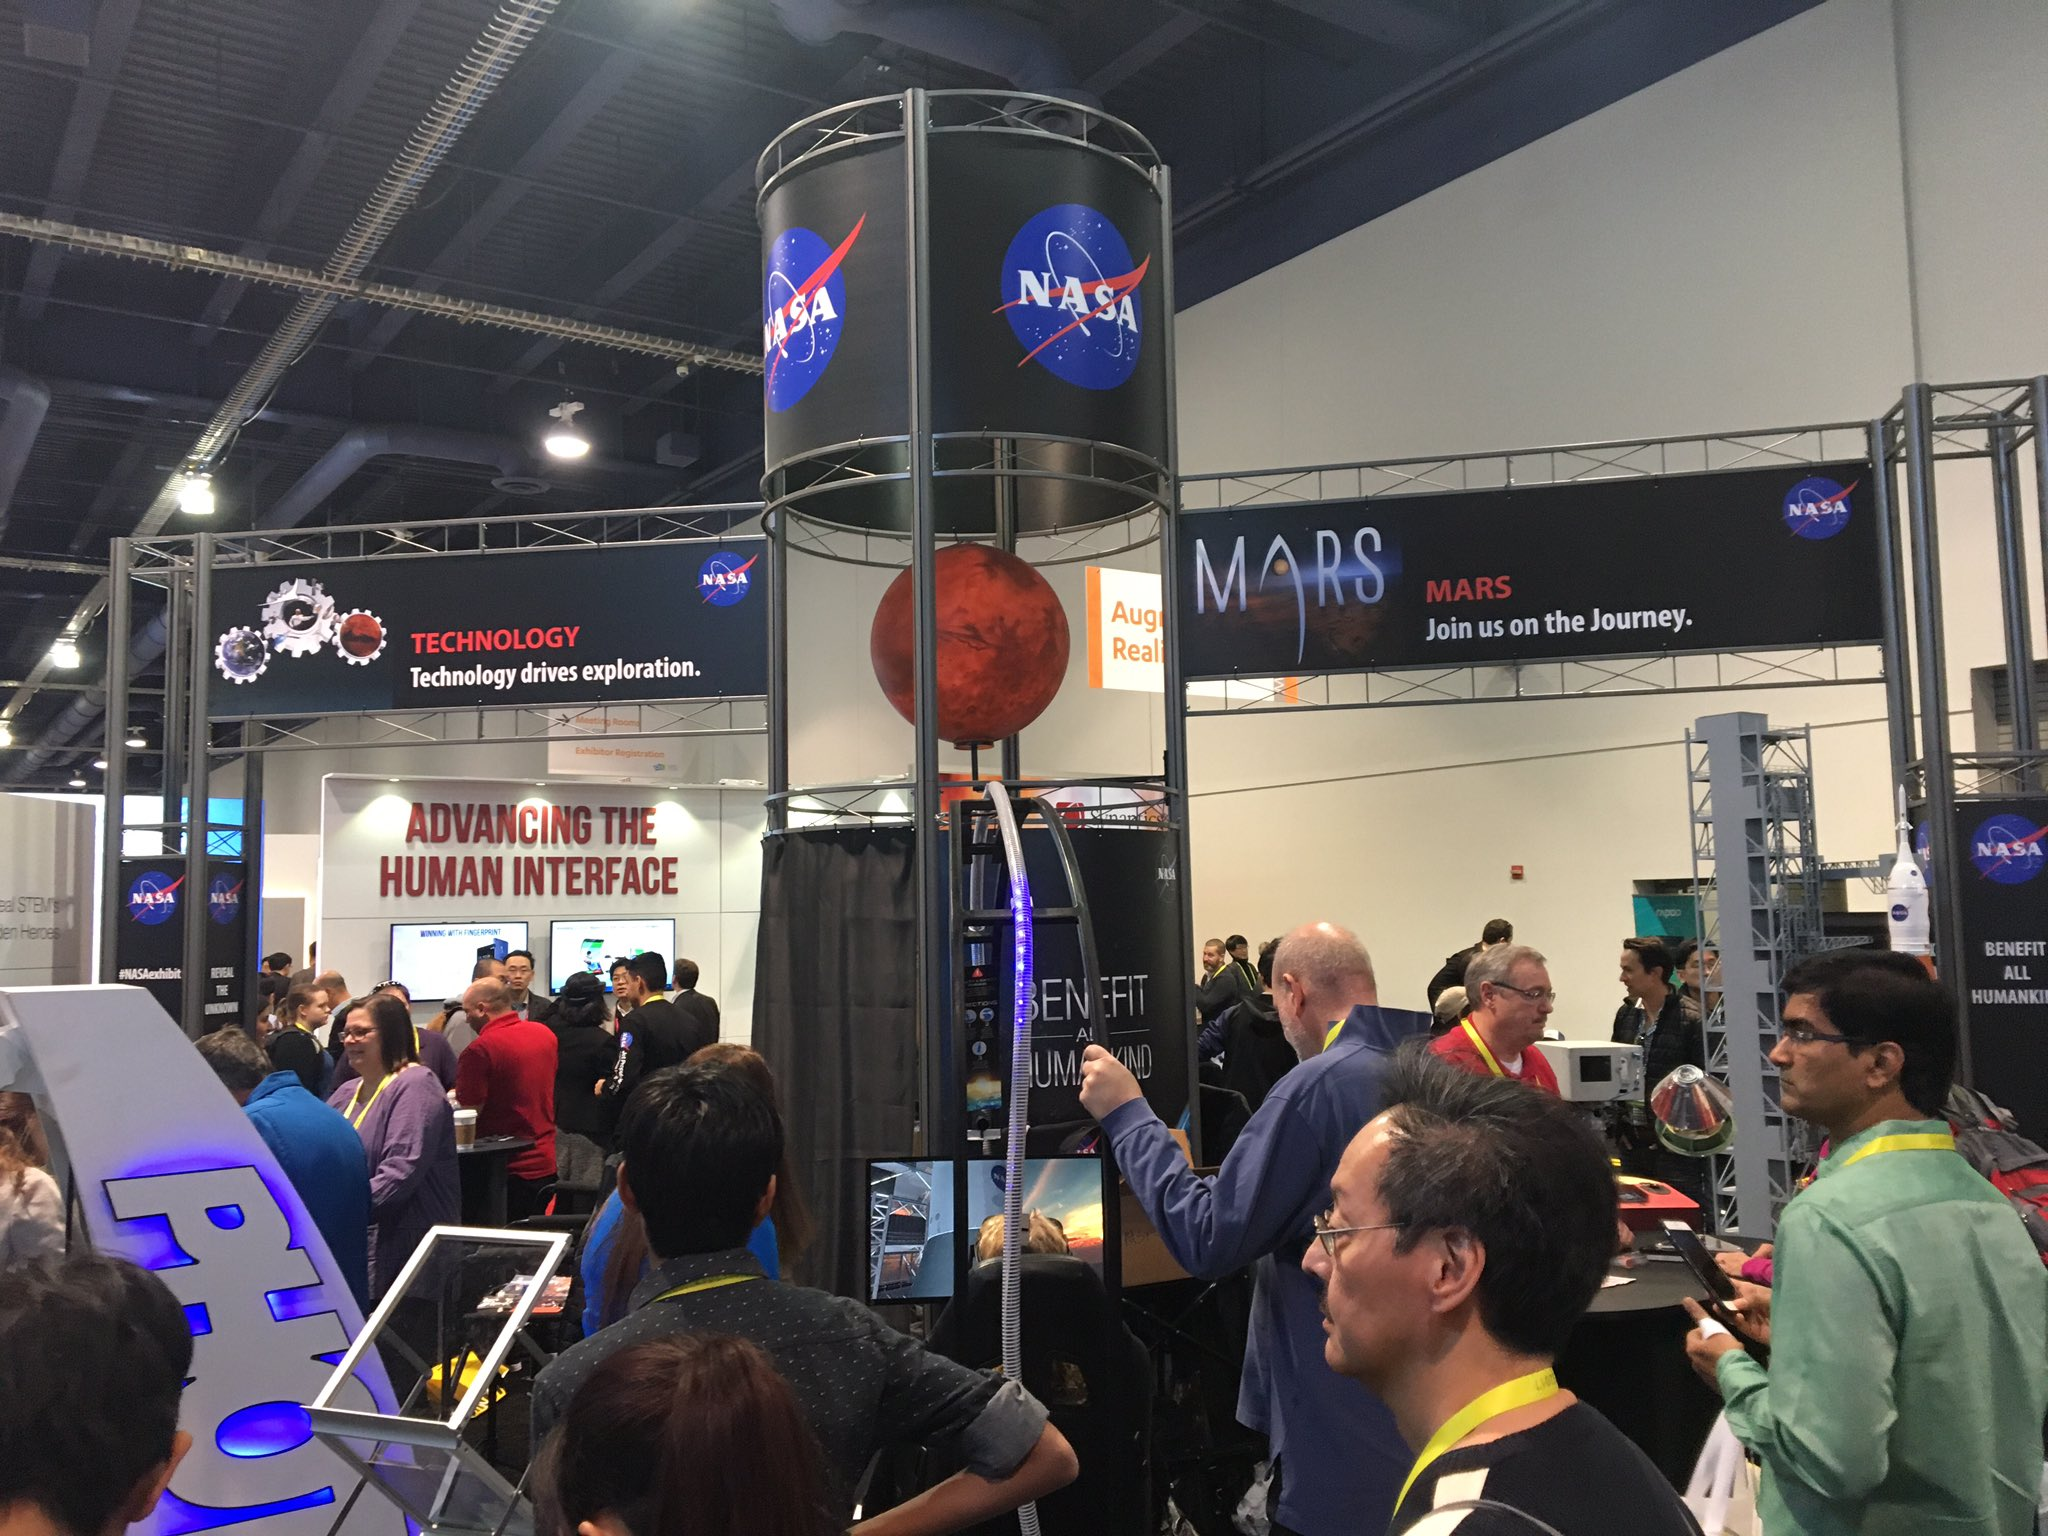 Even @NASA has a booth at #CES2017 #MashCES https://t.co/HJNjfLPRS3